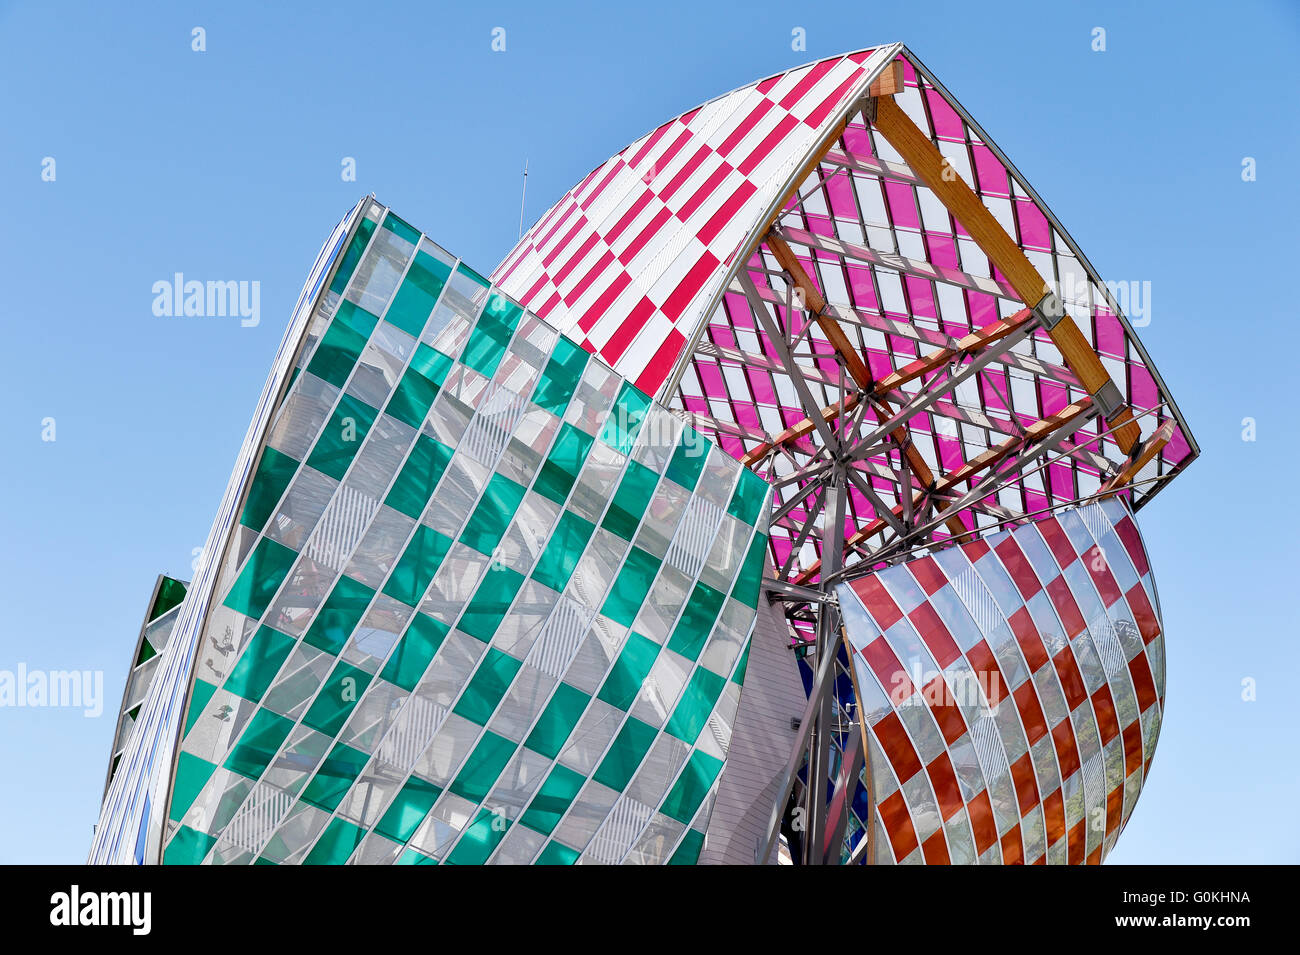 paris daniel buren stockfotos paris daniel buren bilder alamy. Black Bedroom Furniture Sets. Home Design Ideas